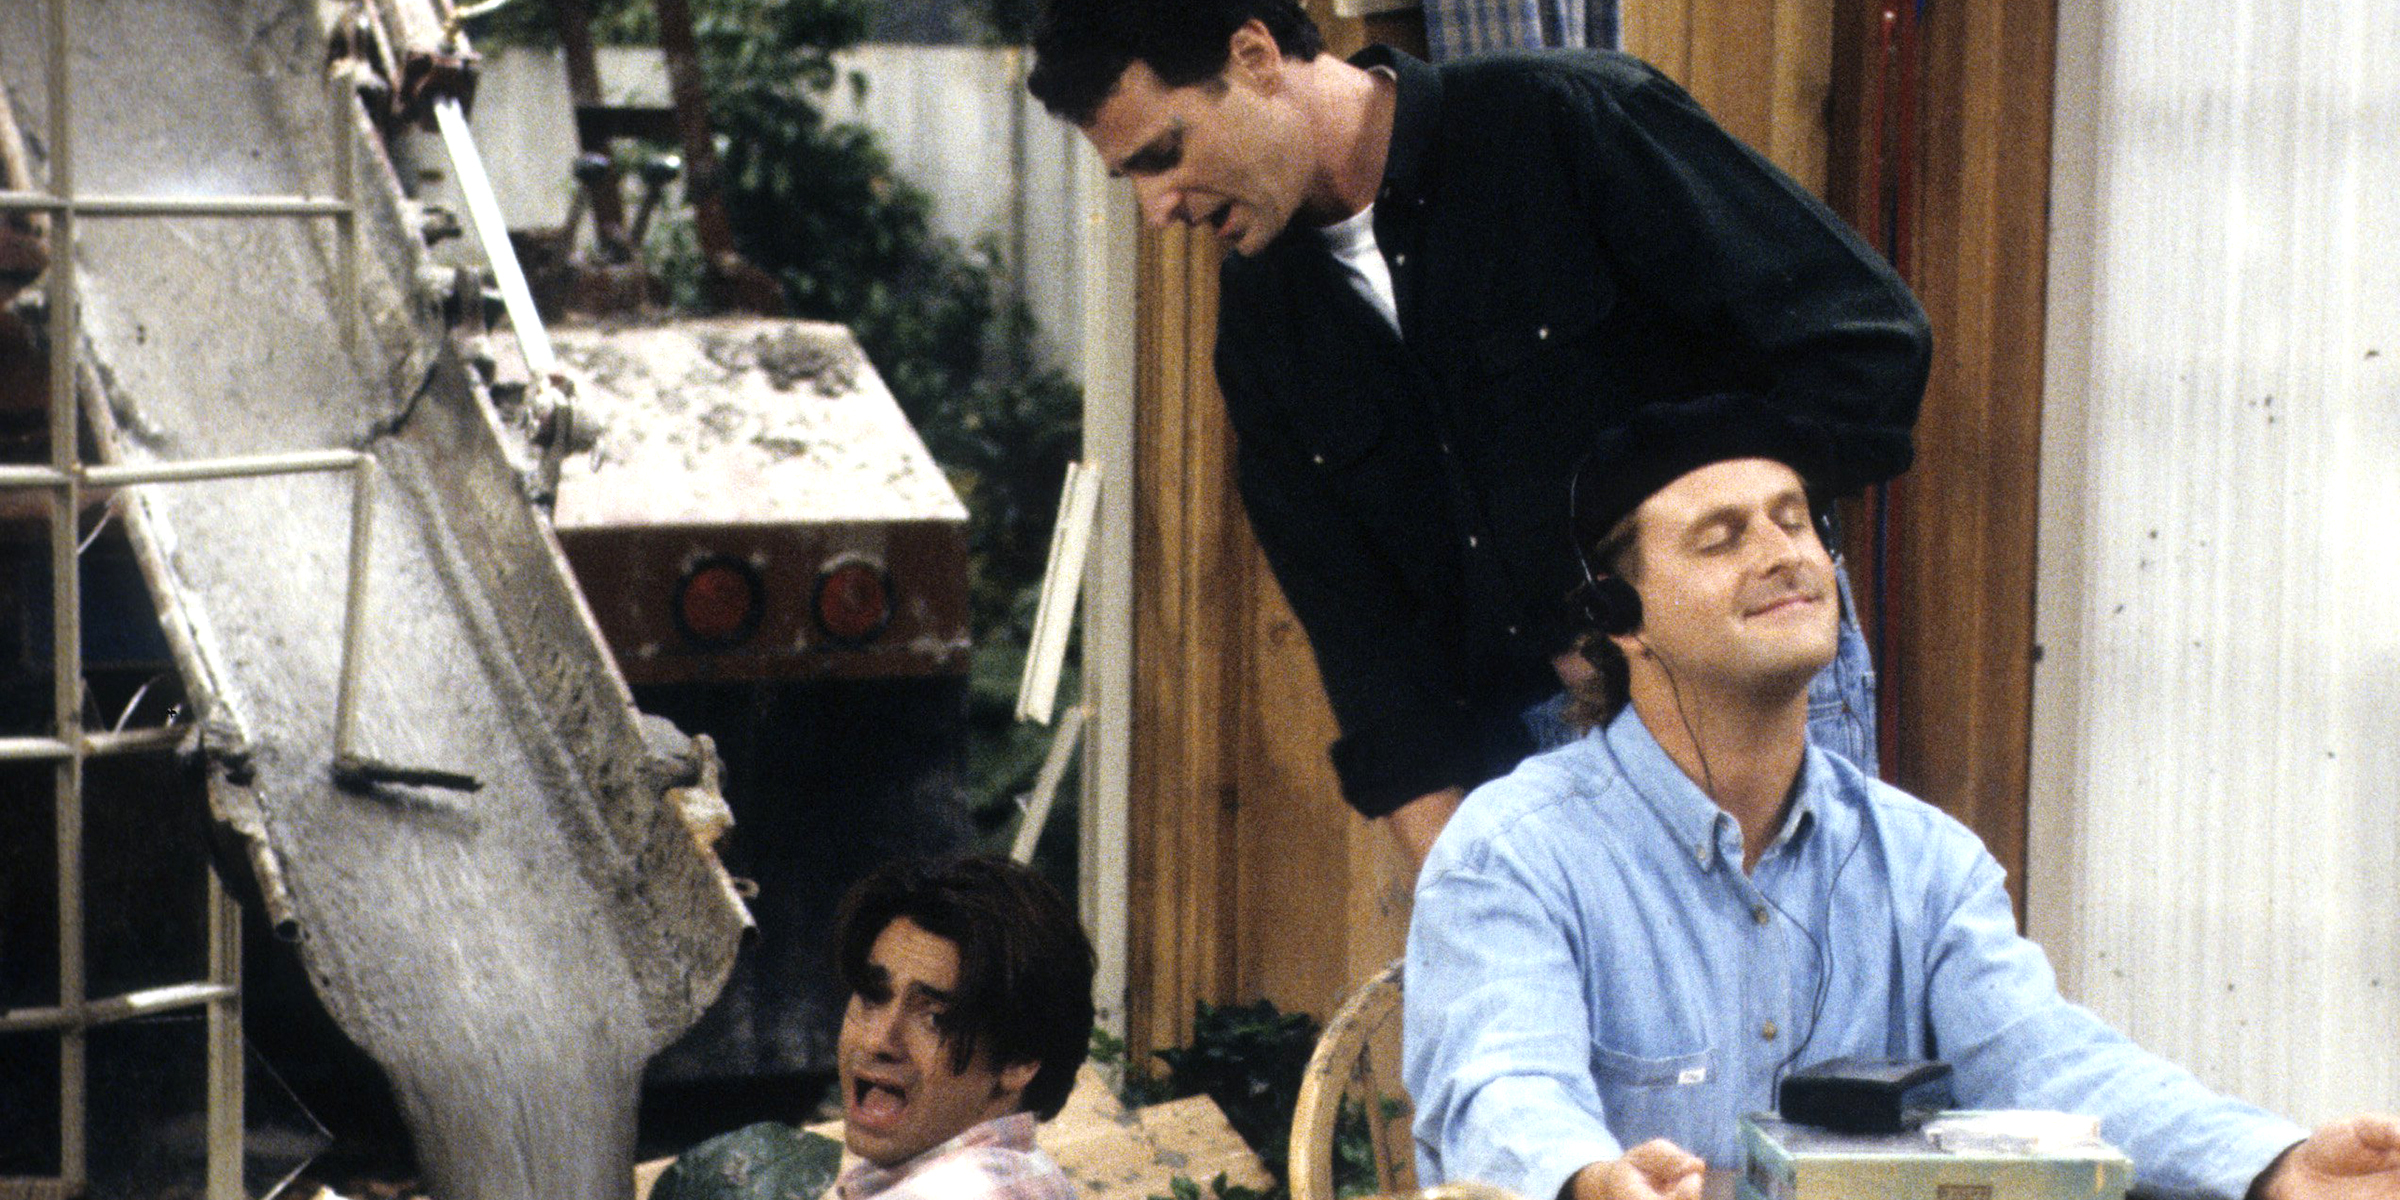 Dave Coulier weighs in on his funniest 'Full House' moment